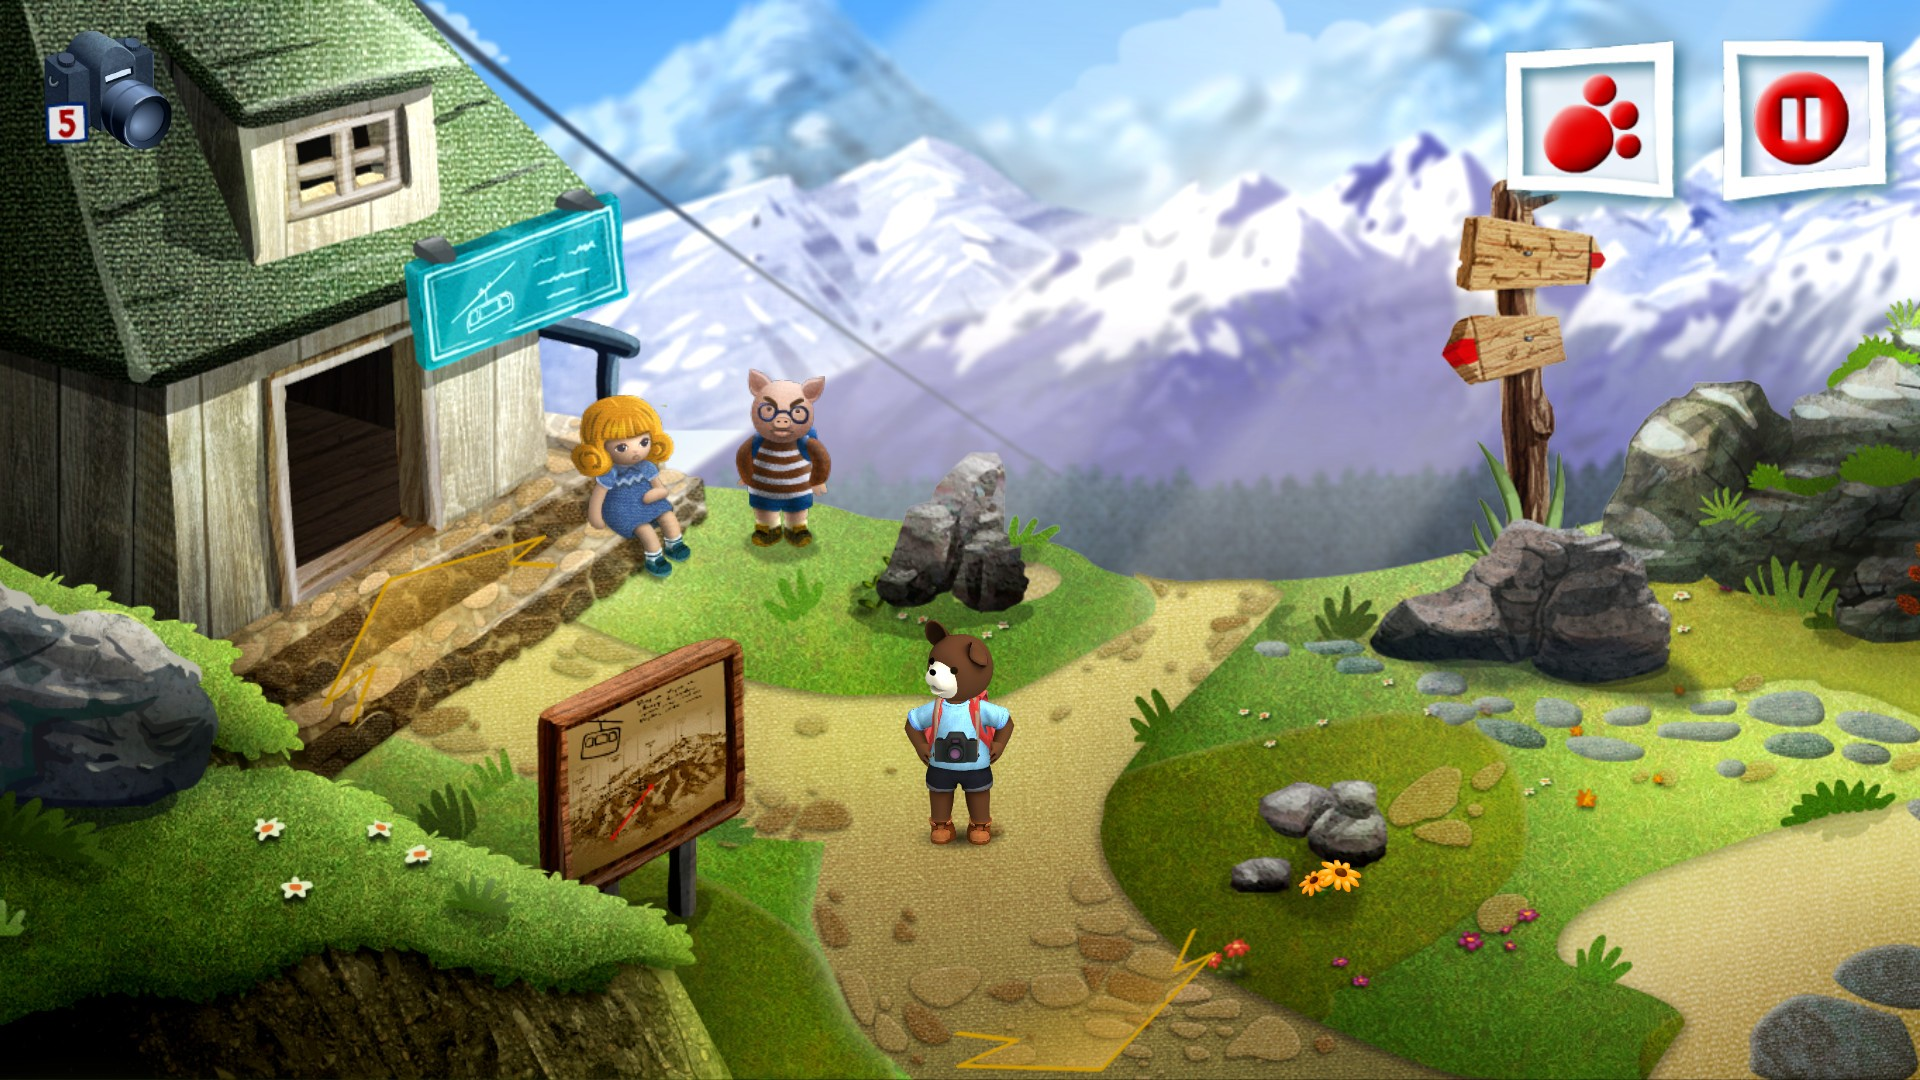 Teddy Floppy Ear Mountain Adventure Is A Linux Games For